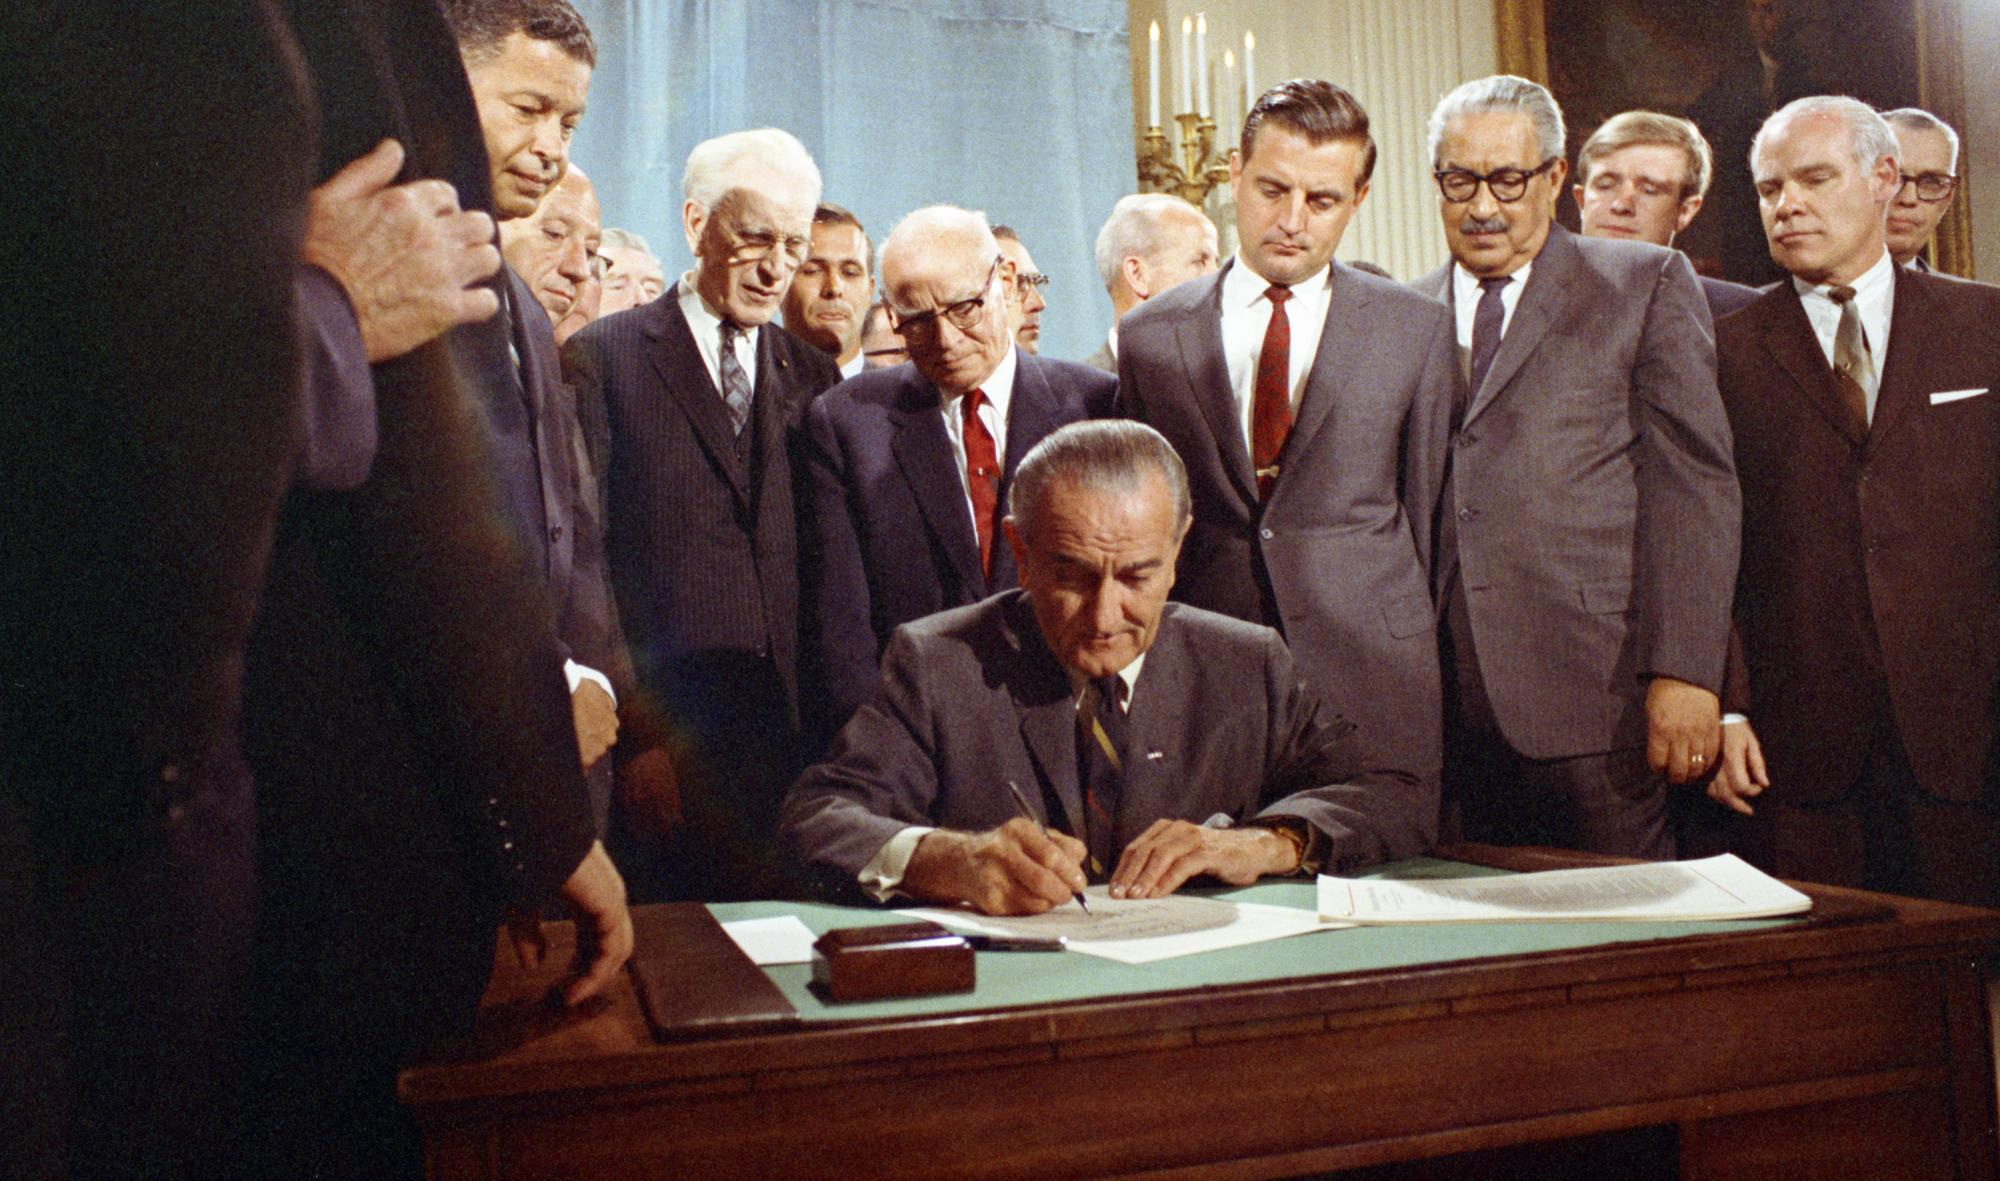 Photo of the signing of the Civil Rights Act of 1968. Video from the LBJ Library of the signing of the 1968 Civil Rights Act